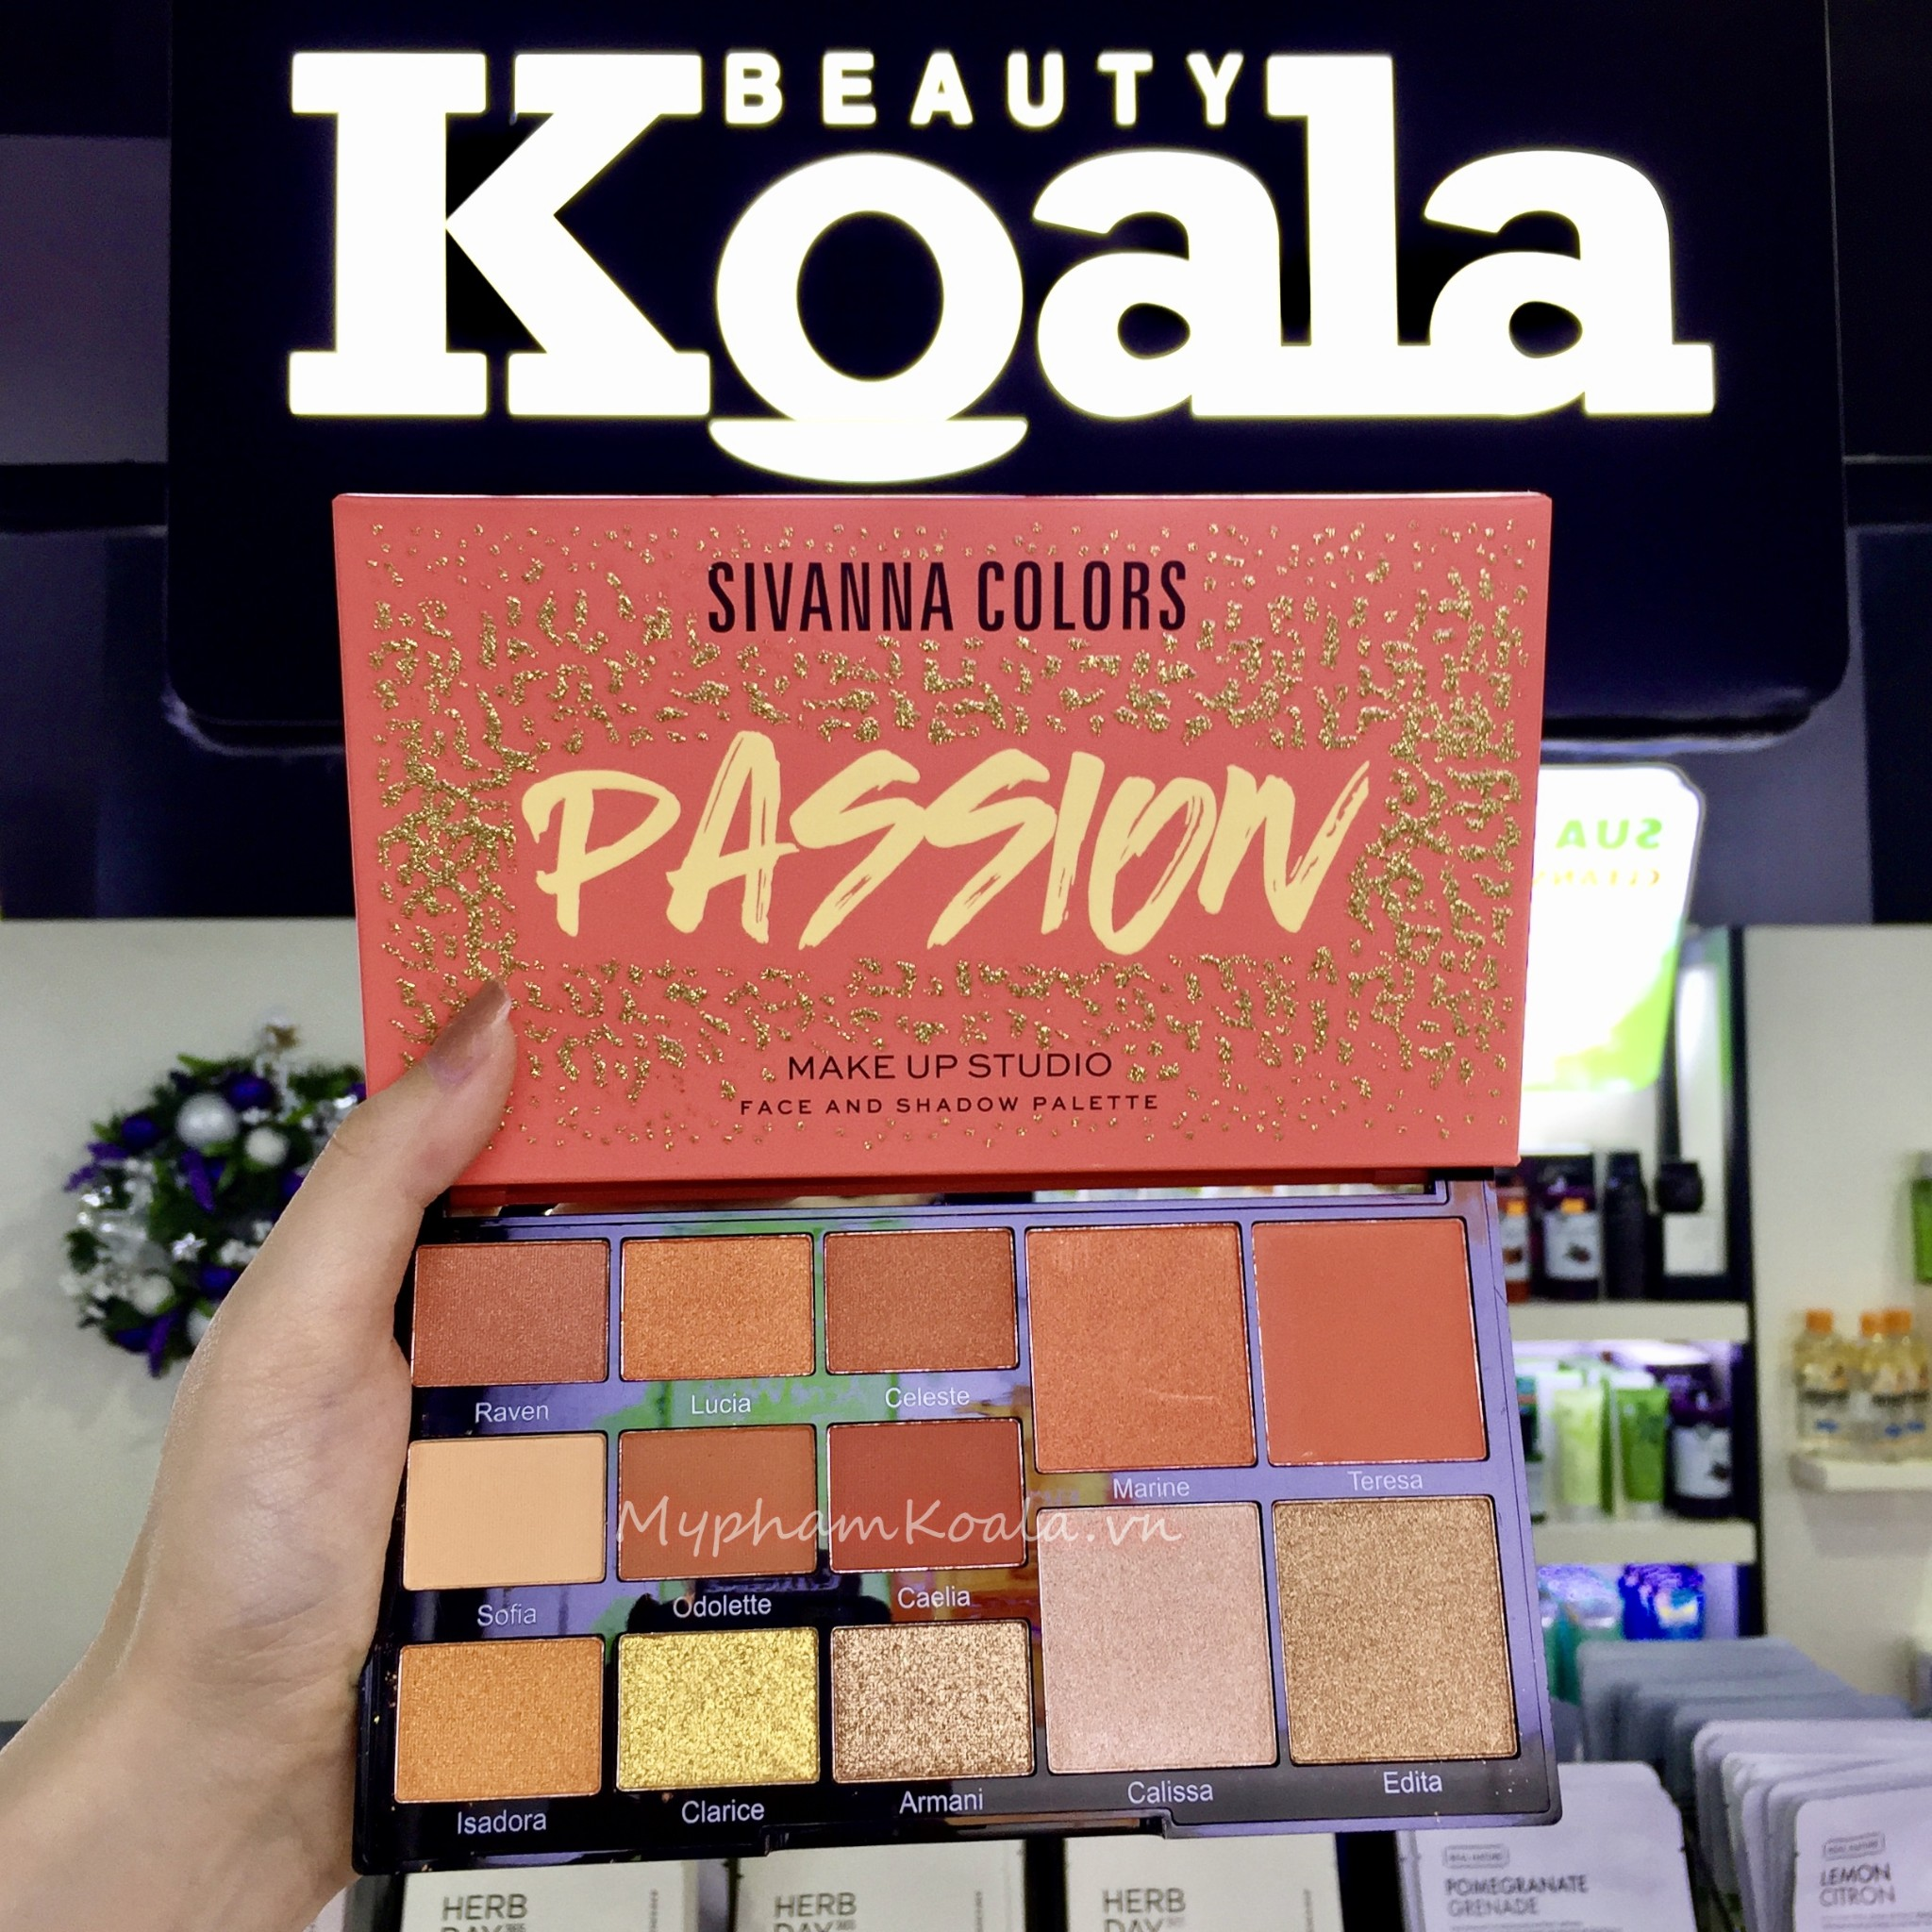 Màu Mắt Đa Năng Sivanna Colors Passion Makeup Studio Face And Shadow Palette